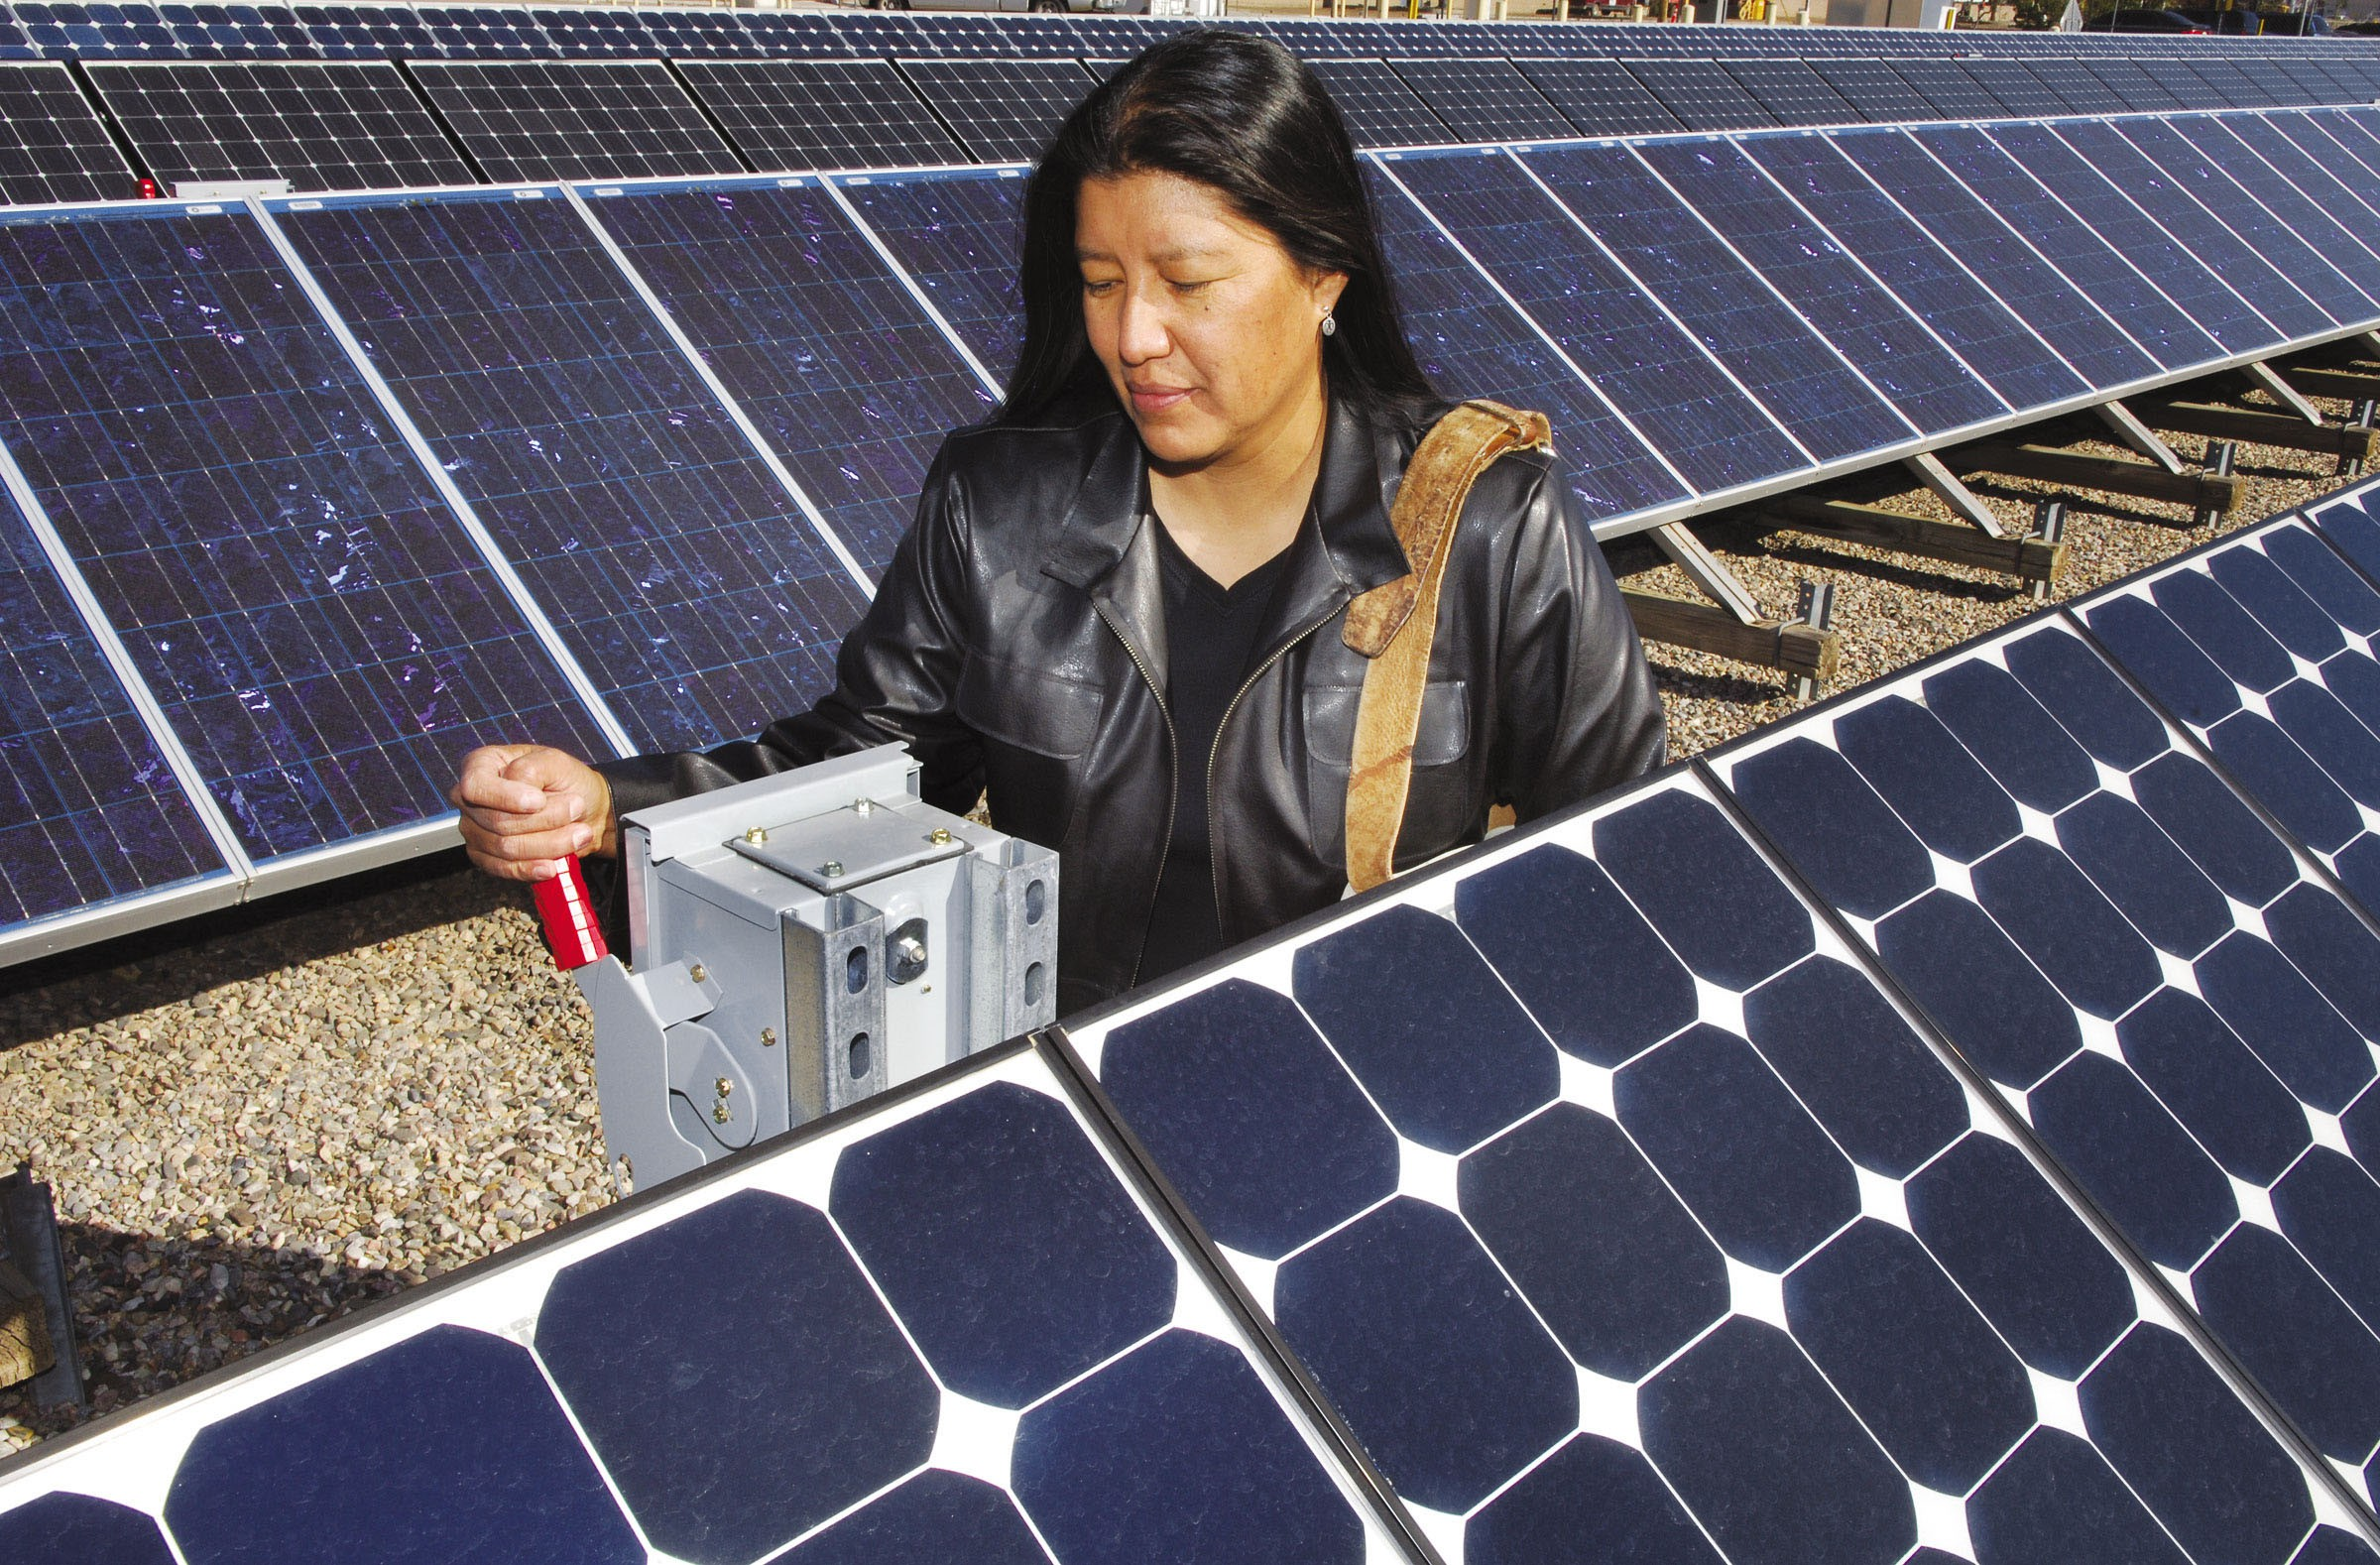 The project will also provide jobs for Navajo. Photo: Microgrid Media